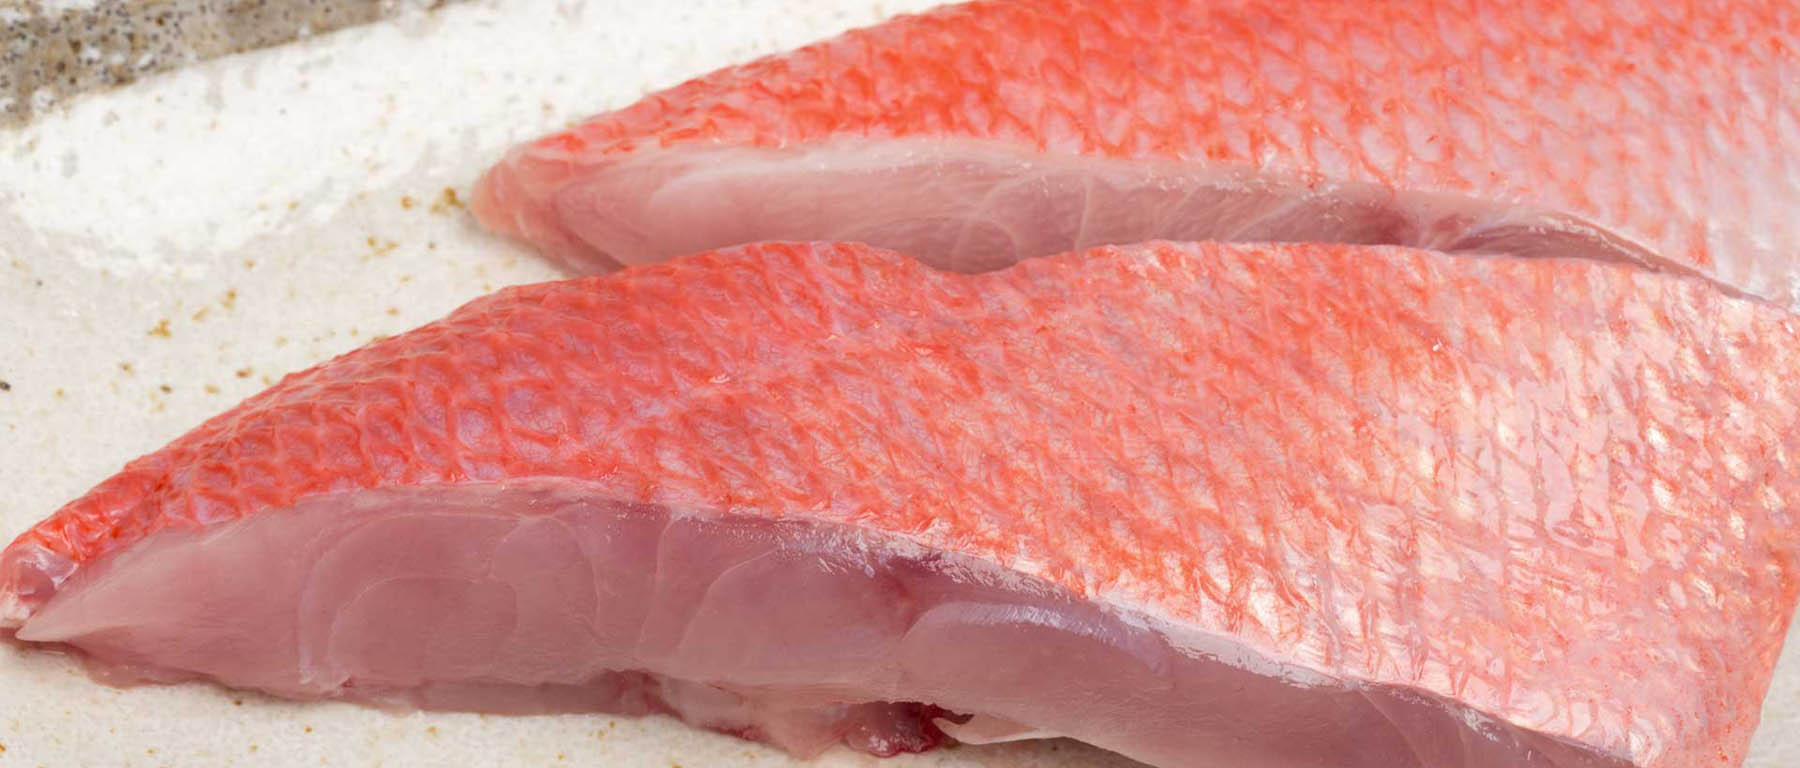 Red Fish from Sirena Group